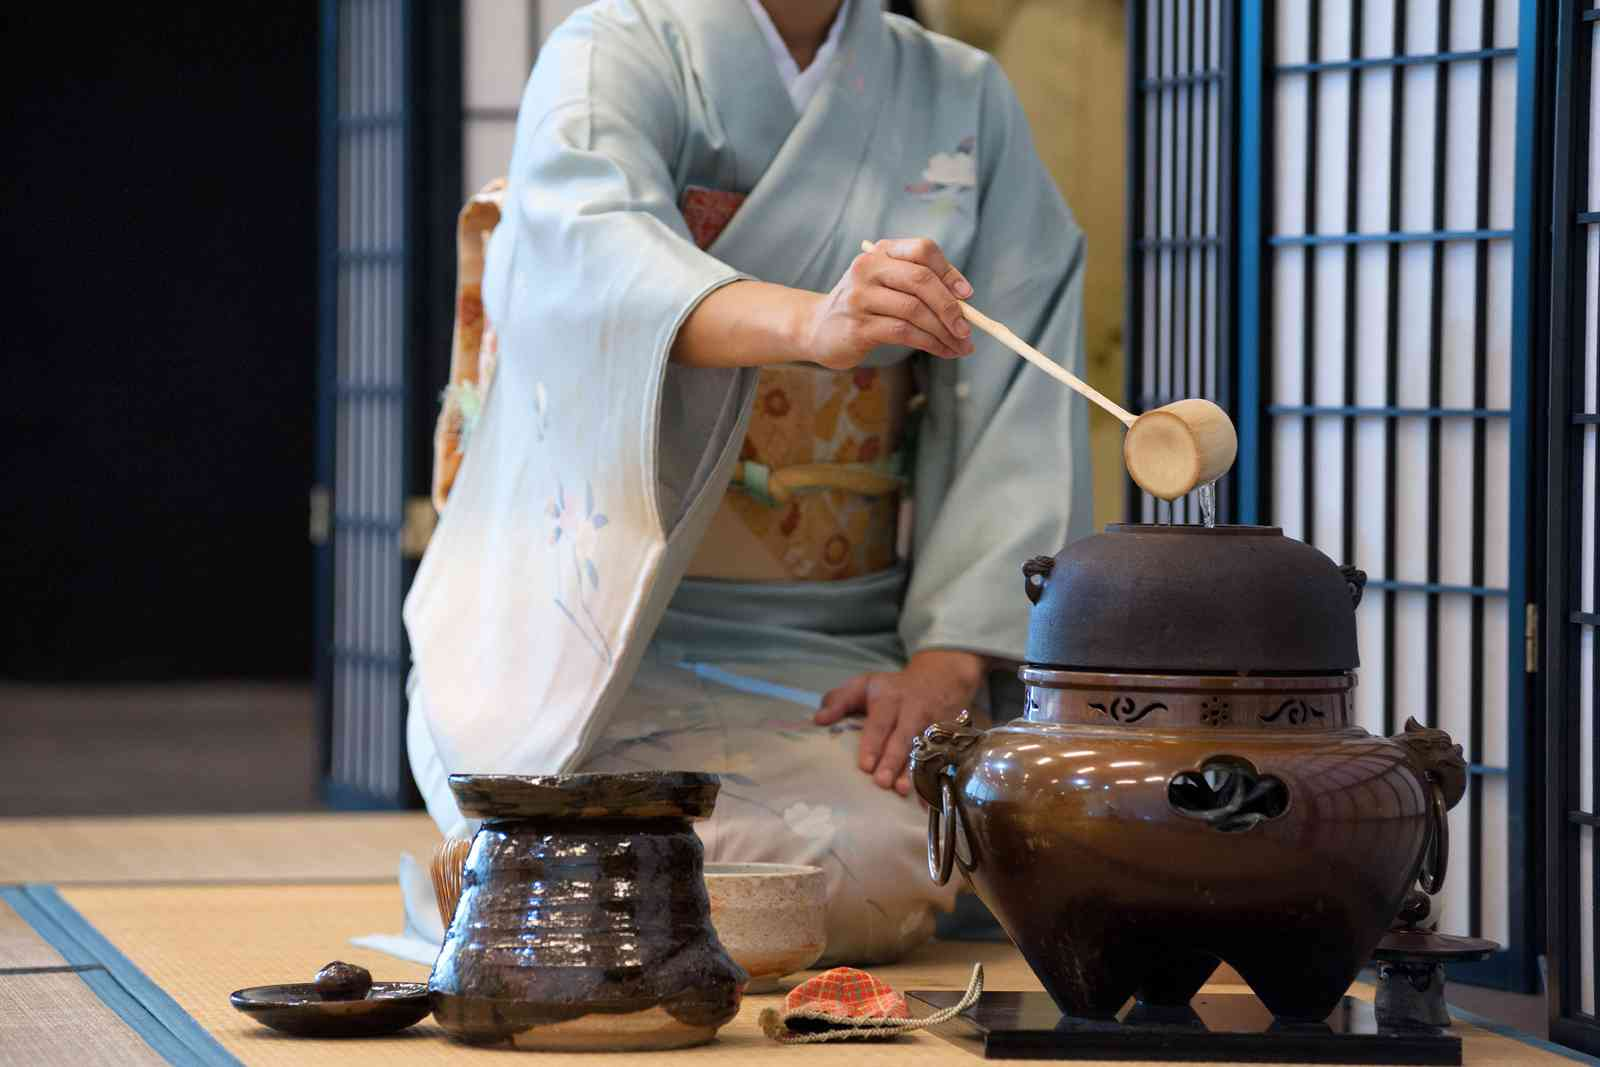 A tea ceremony in Japan (Shutterstock)